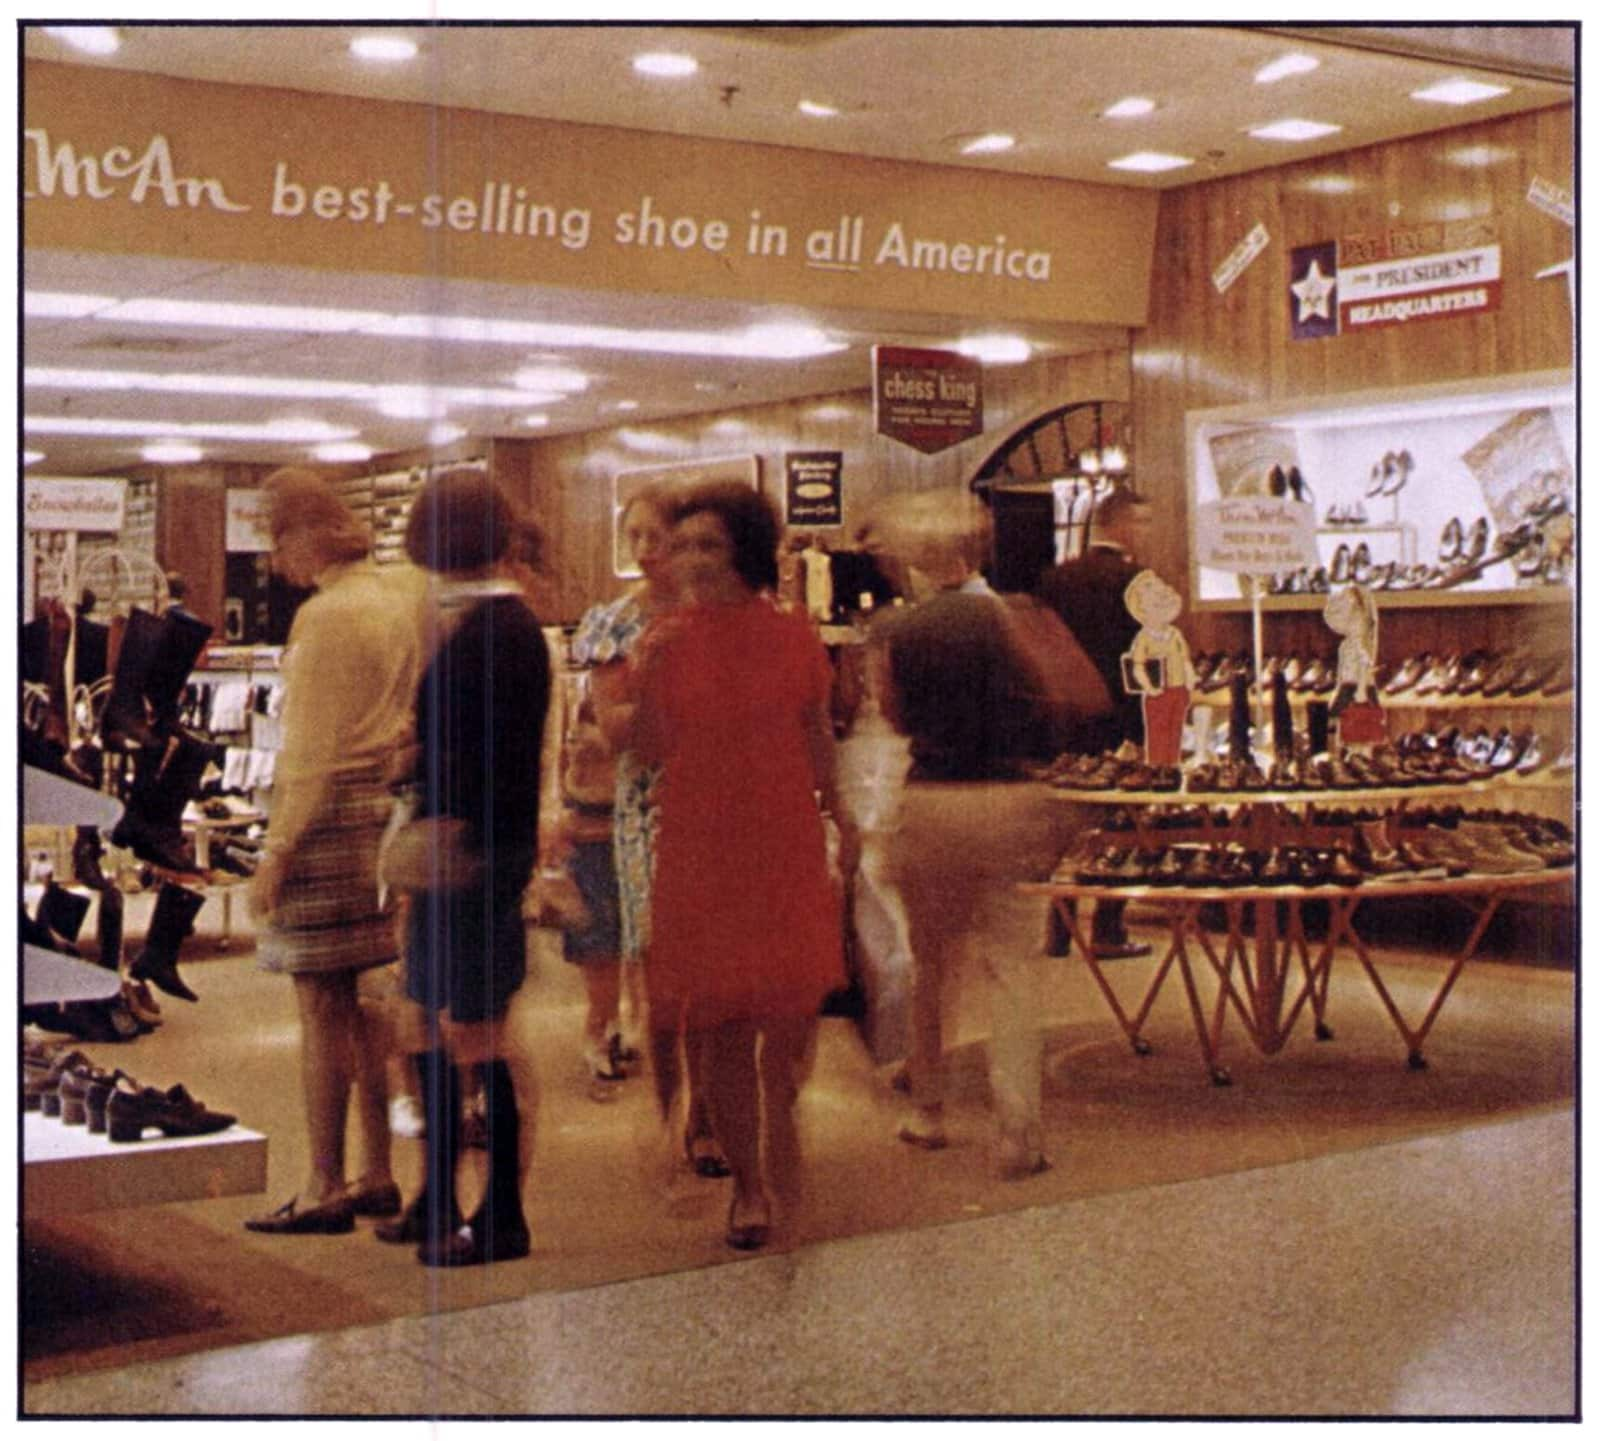 Shoe shopping at Thom McAn store (1968)